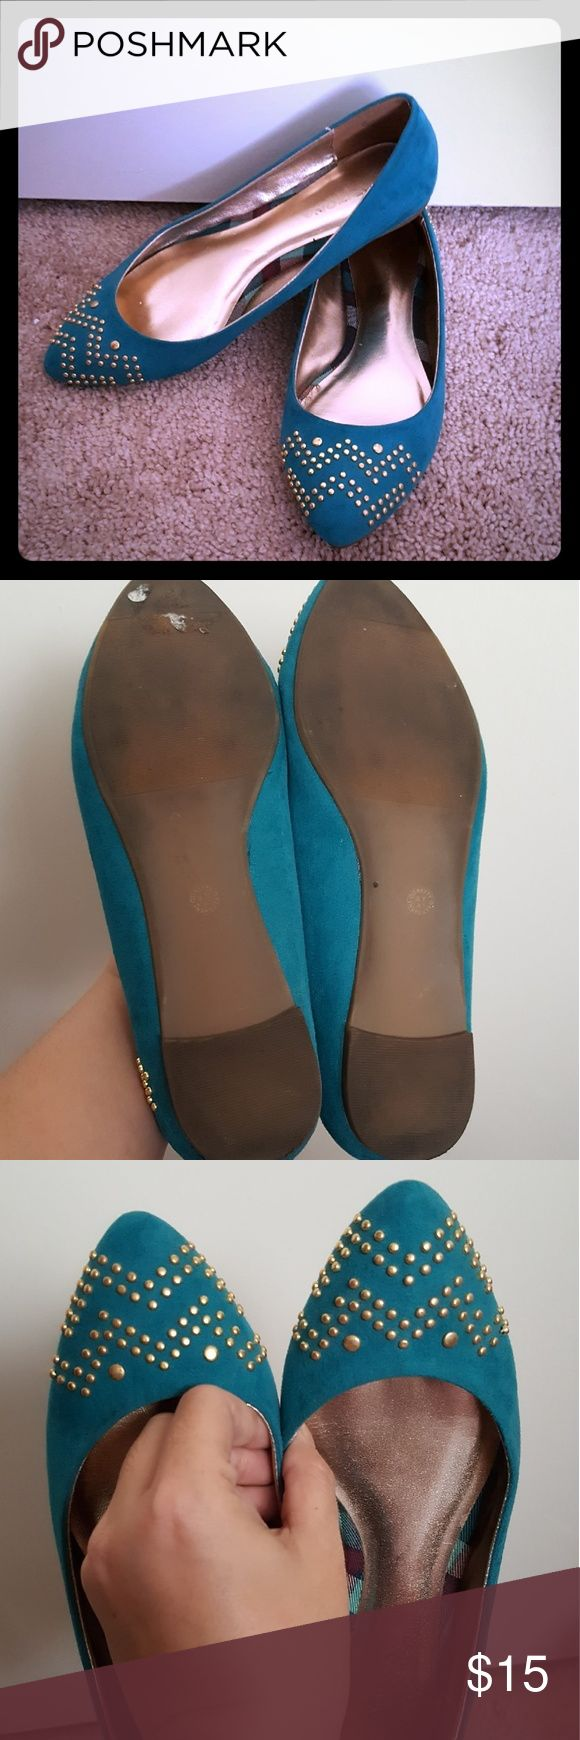 Arizona pointed flat shoes with studs sz 6.5 Arizona flat shoes are only worn a couple of times. The color is teal there are no defects but just minor signs of use on the sole. Otherwise in great condition. Comes from a smoke and pet free home. Arizona Shoes Flats & Loafers